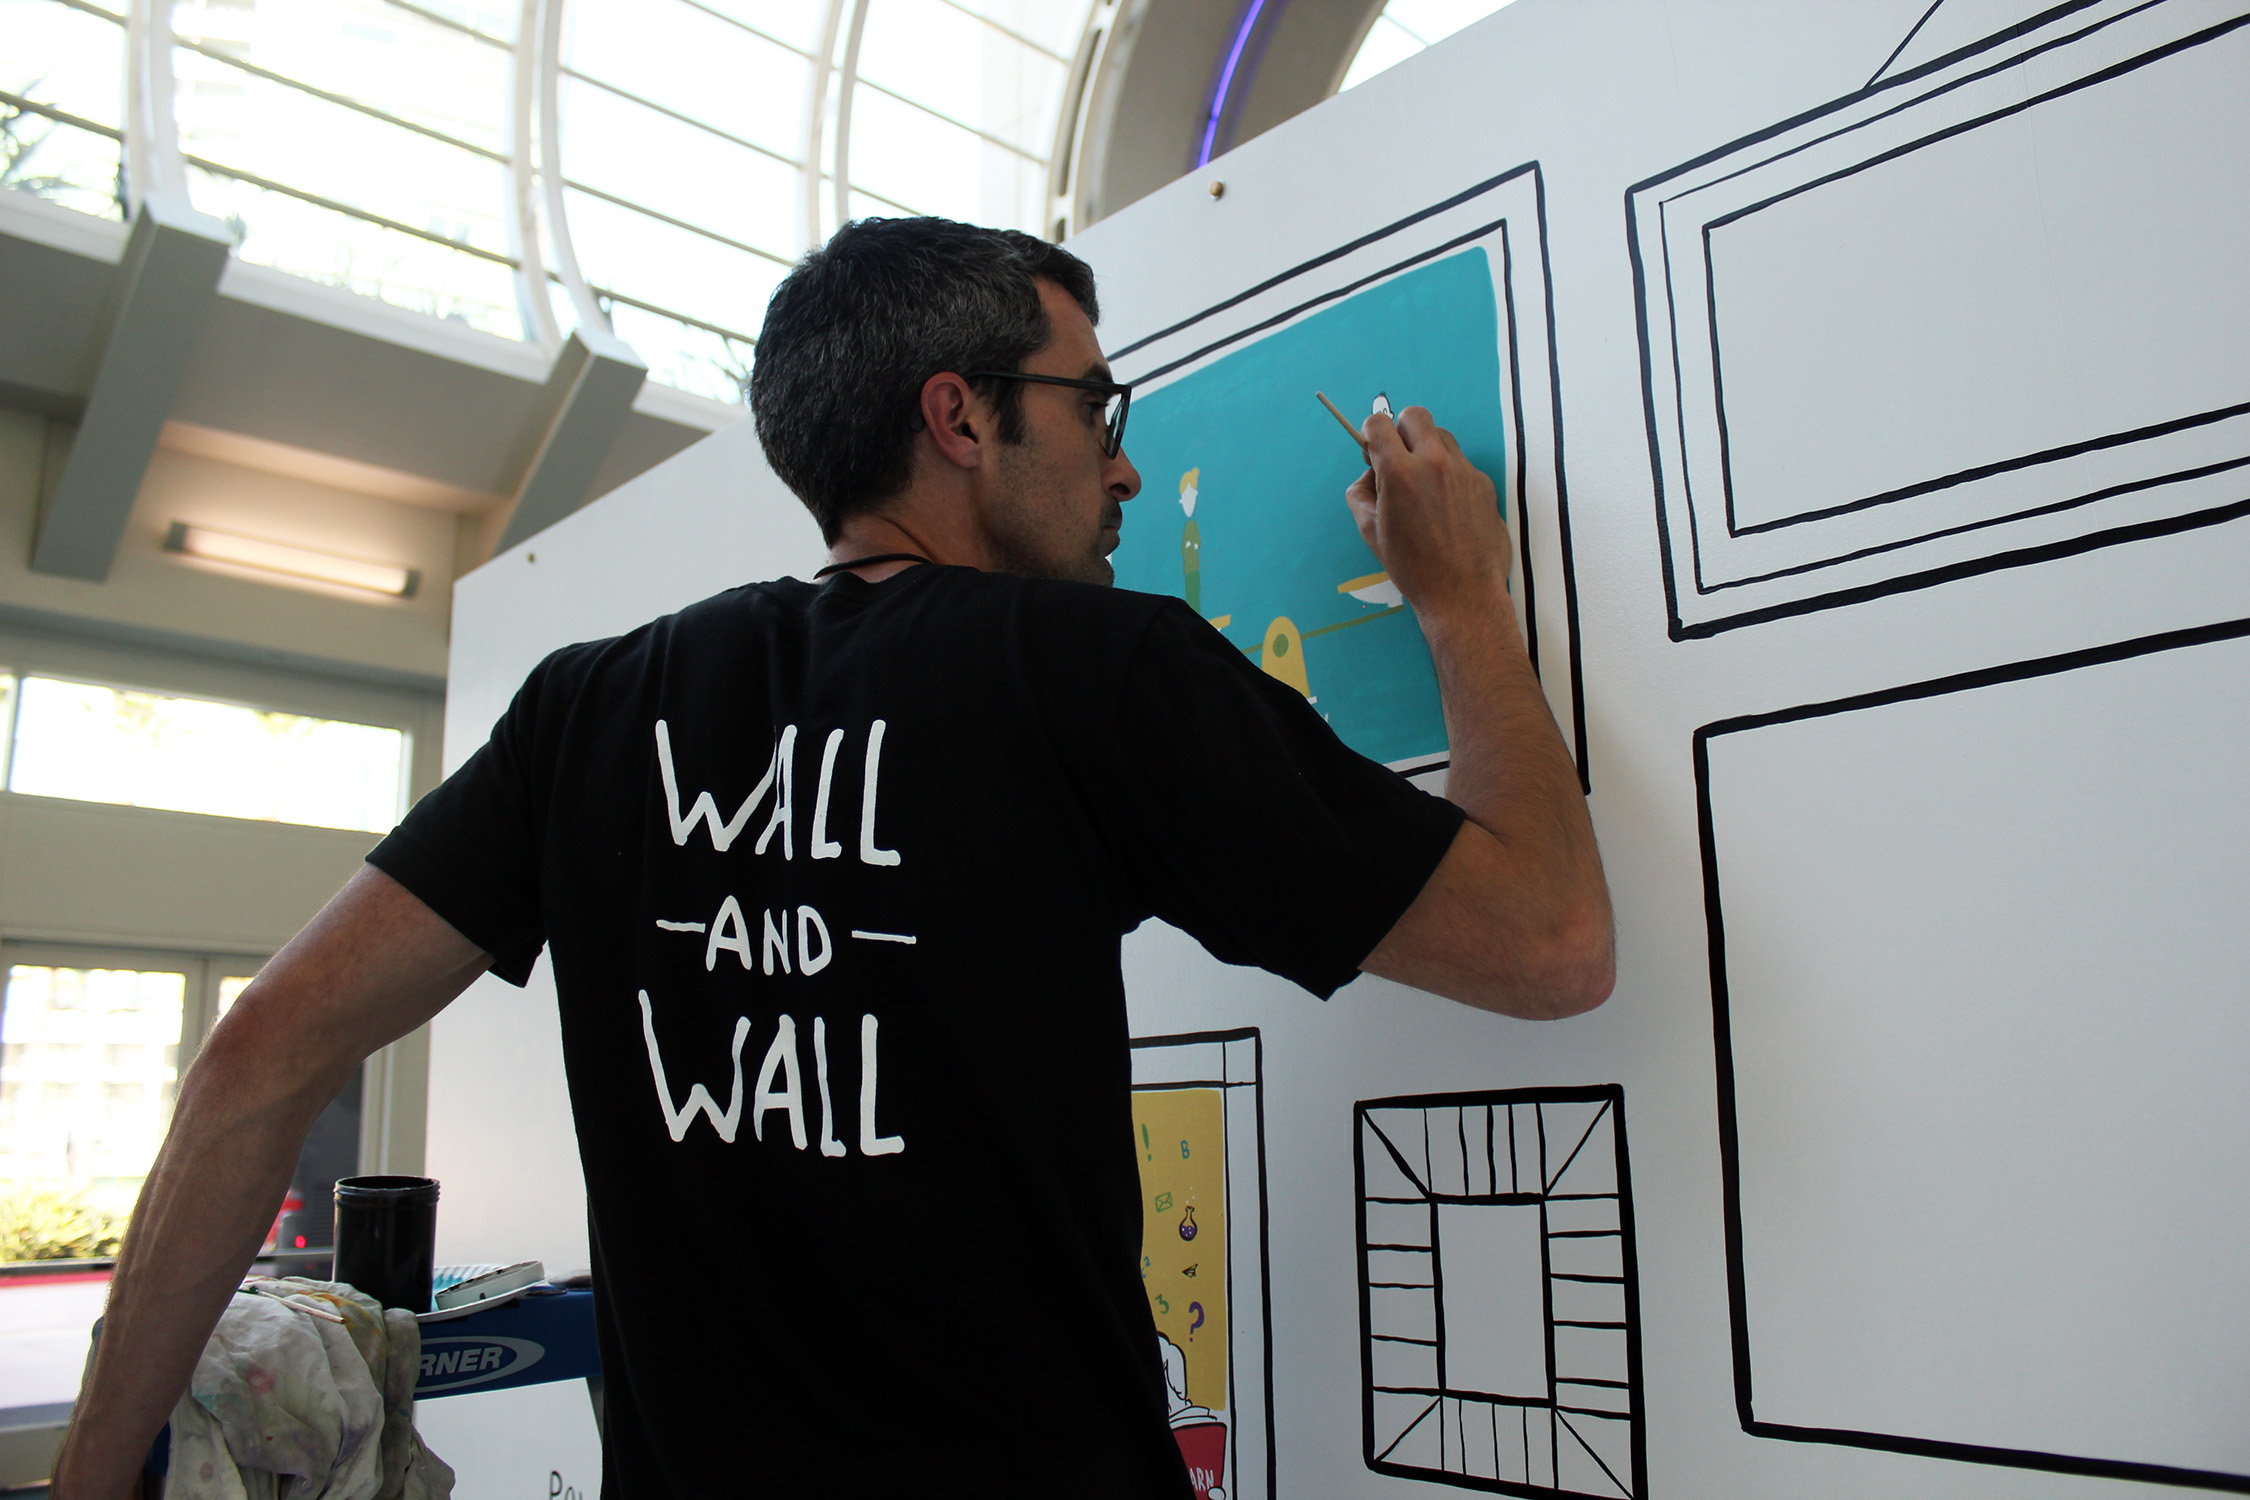 Event-mural-interactive-san-diego-ellucian-wall-and-wall-mural-company_006.jpeg